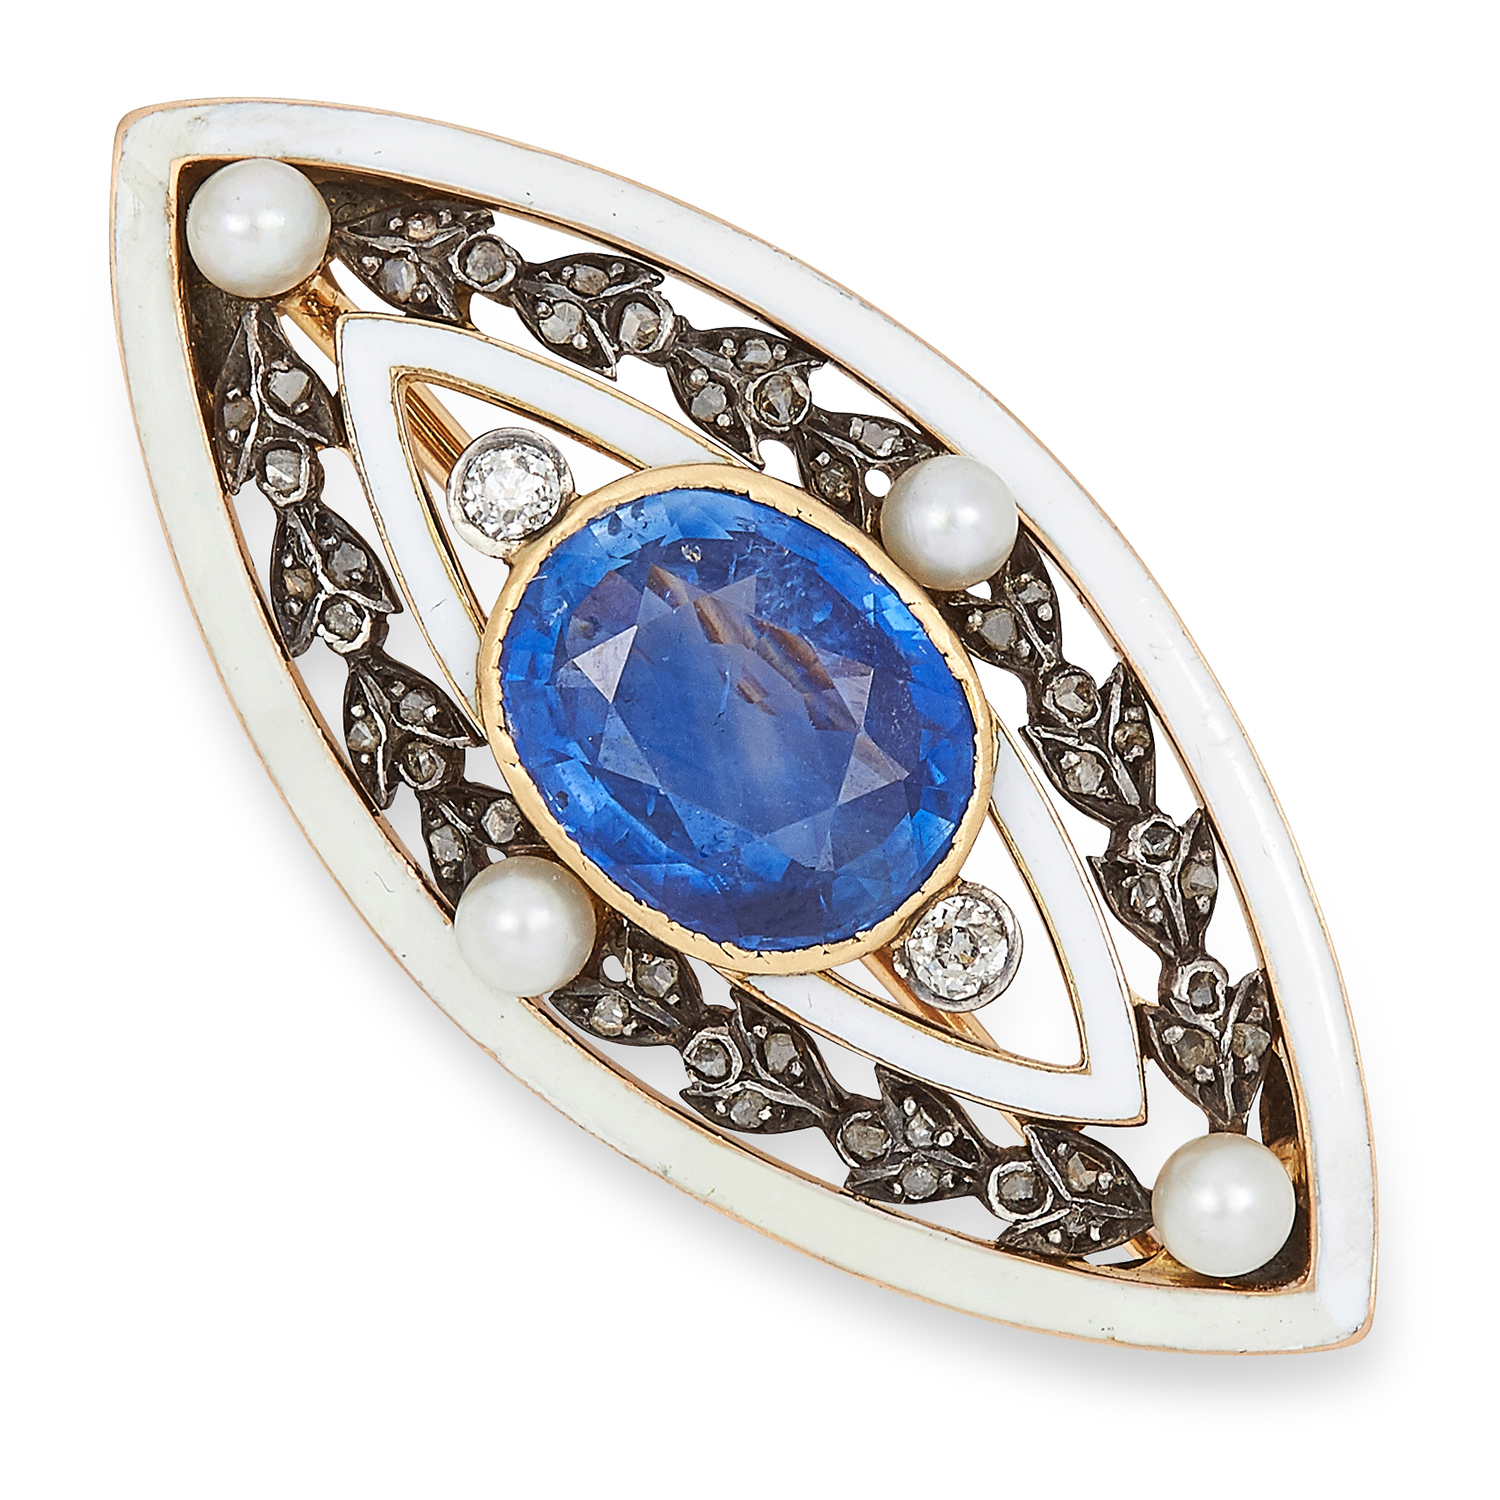 ANTIQUE SAPPHIRE, PEARL, DIAMOND AND ENAMEL BROOCH set with a cushion cut sapphire of